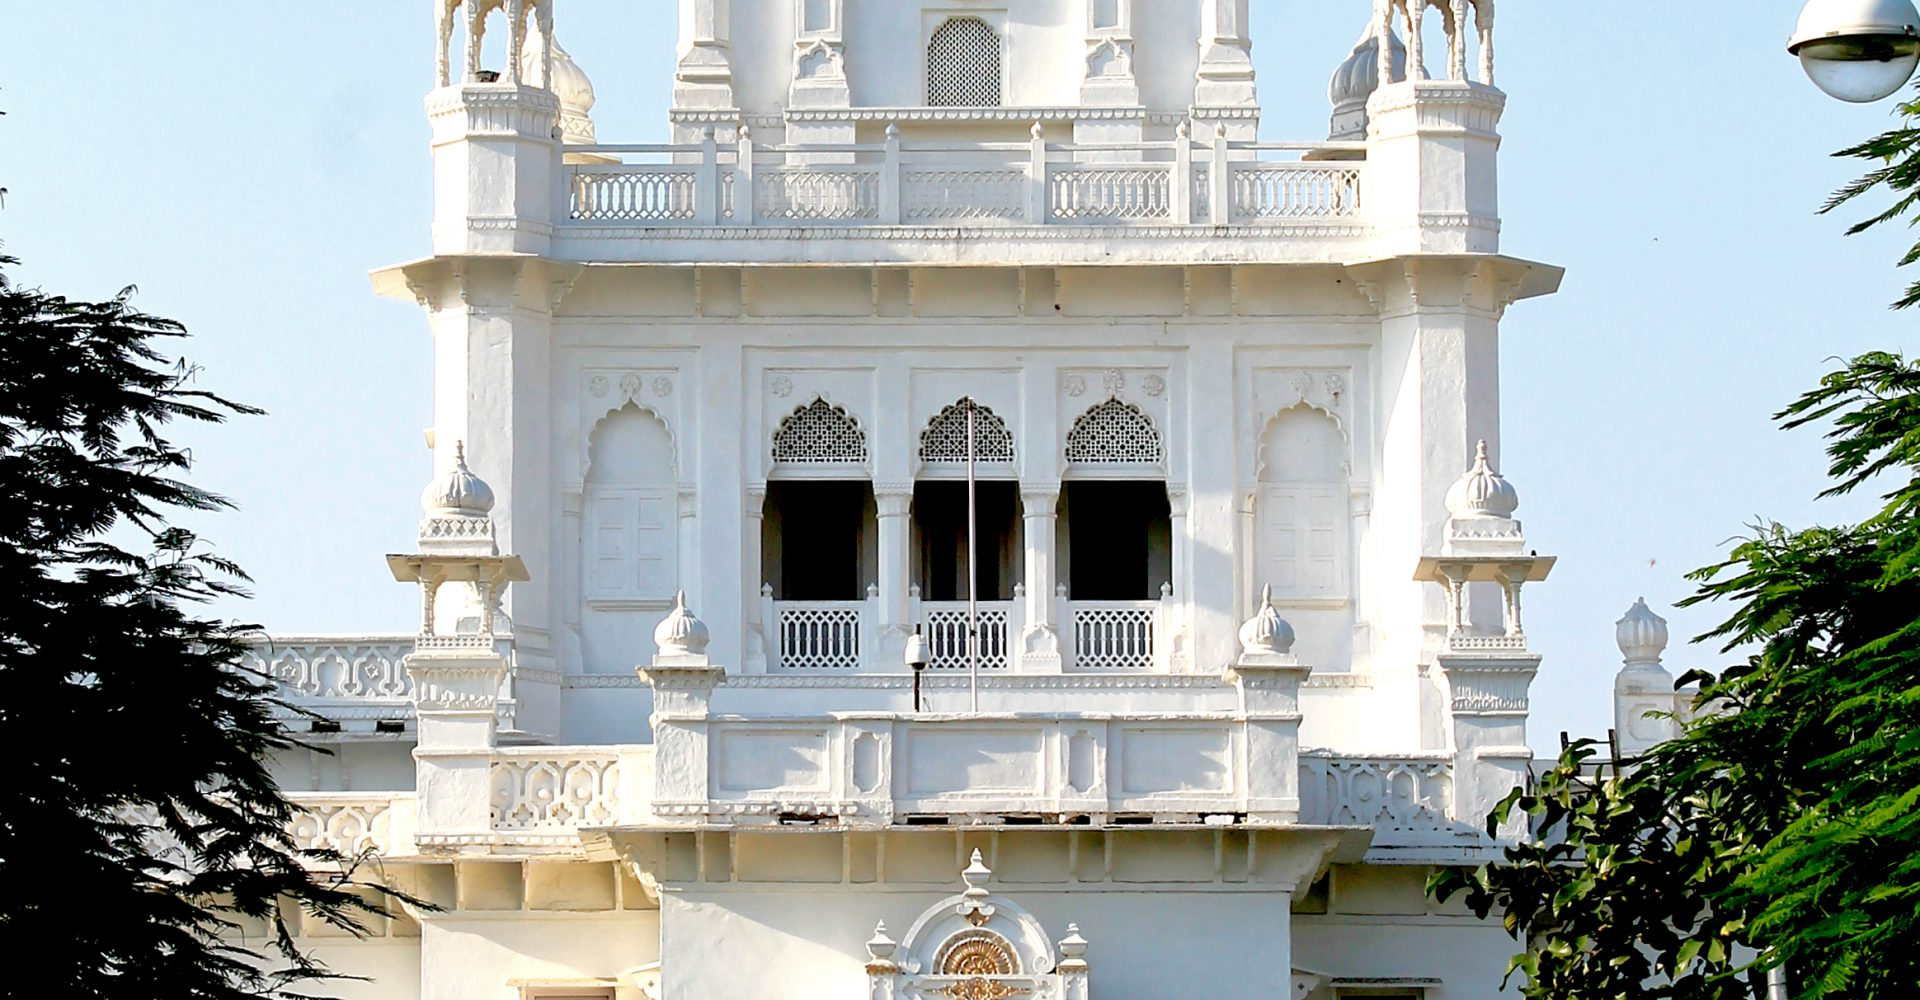 Picture of the Administrative building (built in 1909 A.D.) at king george's medical university, Lucknow.